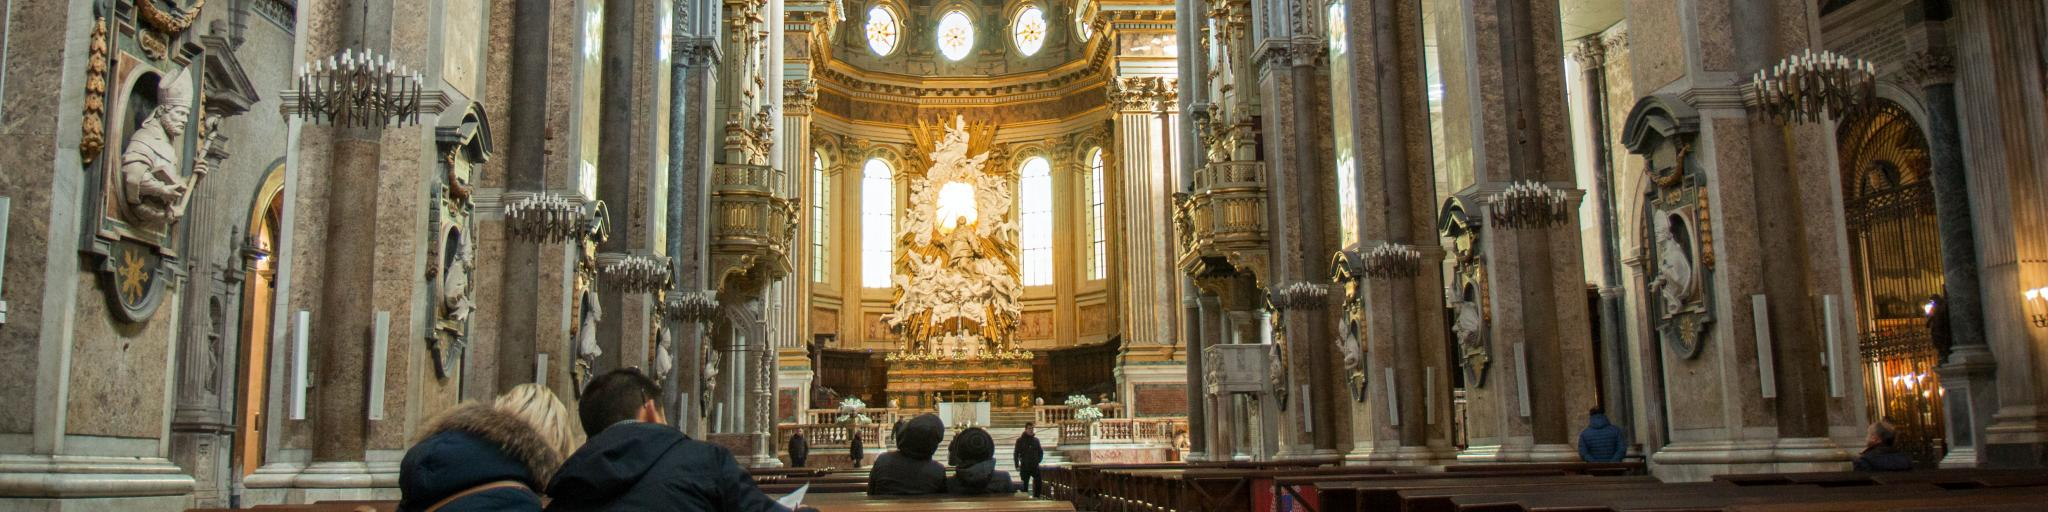 Naples cathedral Italy2